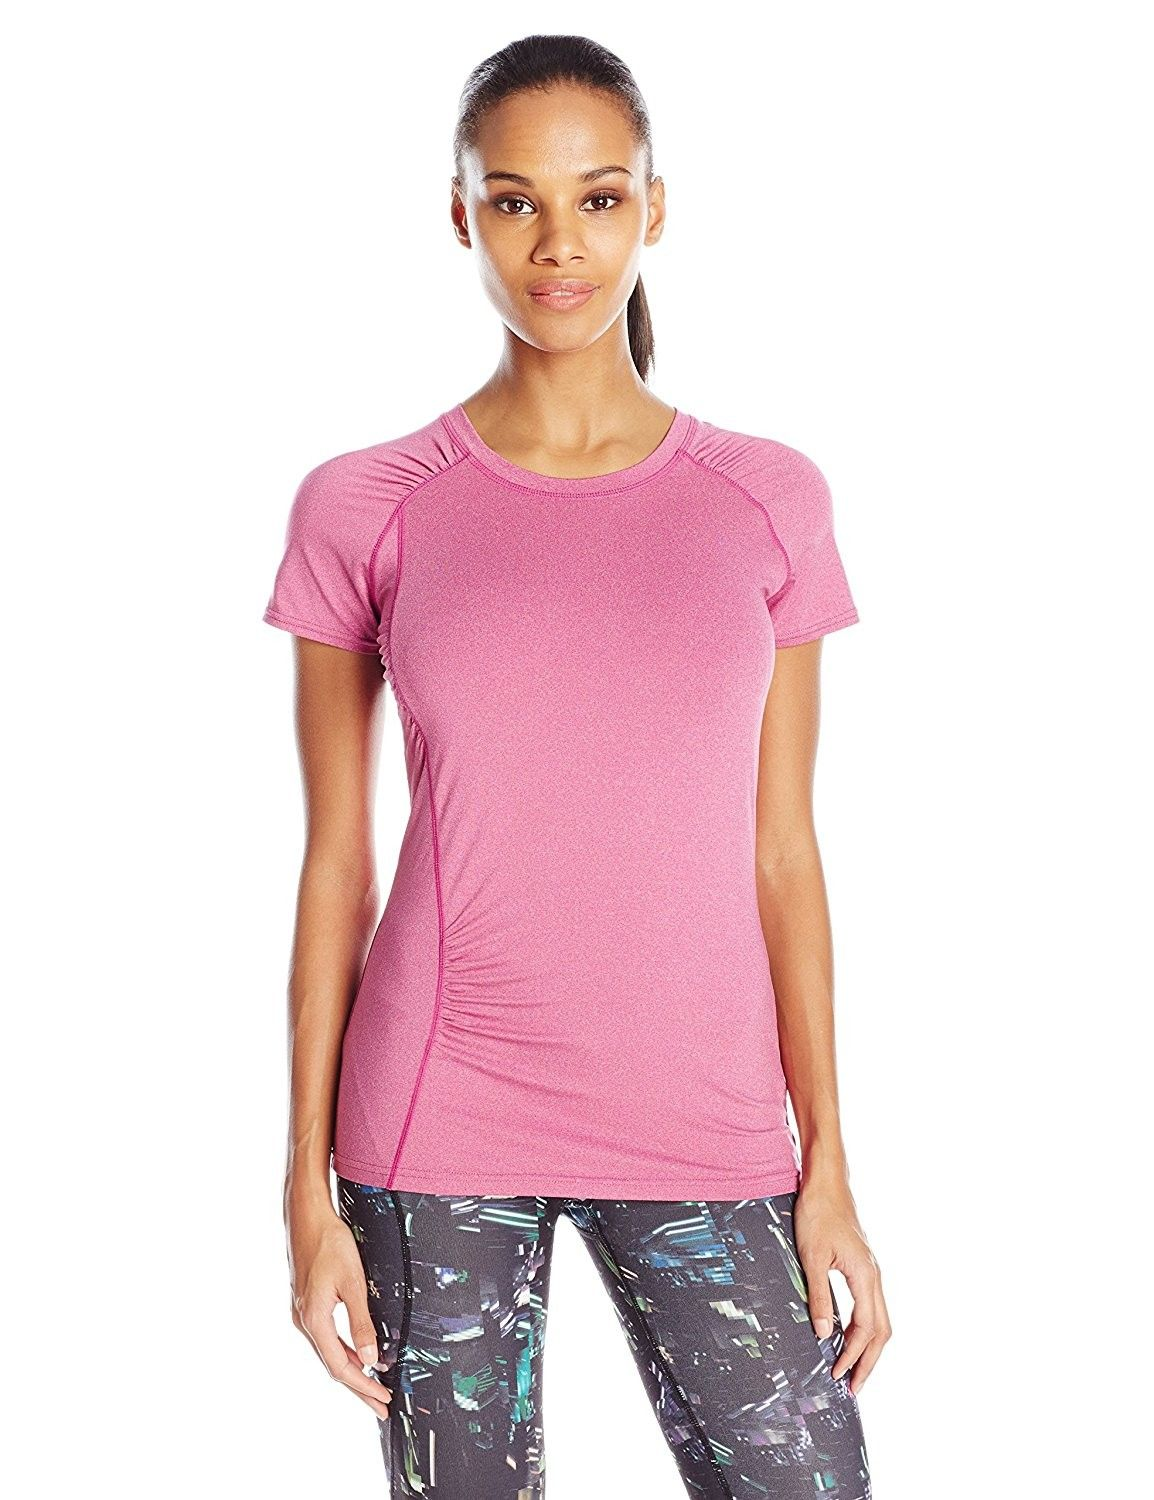 2225b897 Women's Clothing, Active, Active Shirts & Tees, Women's S-Curve Scoop Tee -  Festival Fuchsia - C9124423D7N #Clothing #fashion #Active #style #Sexy  #shopping